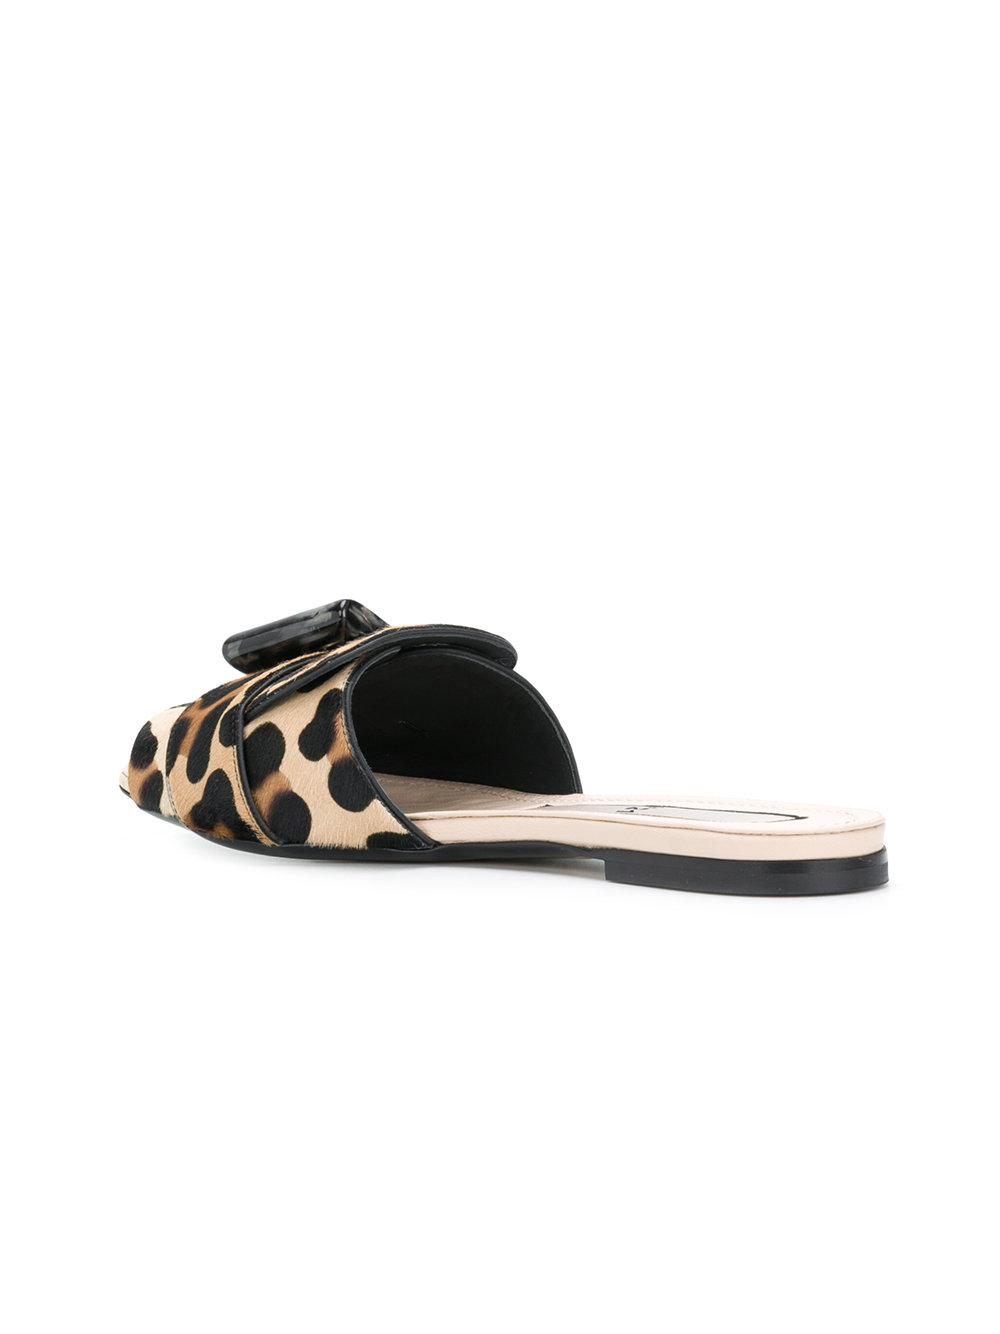 Discount The Cheapest No21 Leopard Print Sliders Free Shipping Footlocker Pictures Discount Best Seller Outlet Classic Cheap Visit New tXXzwIWxtq